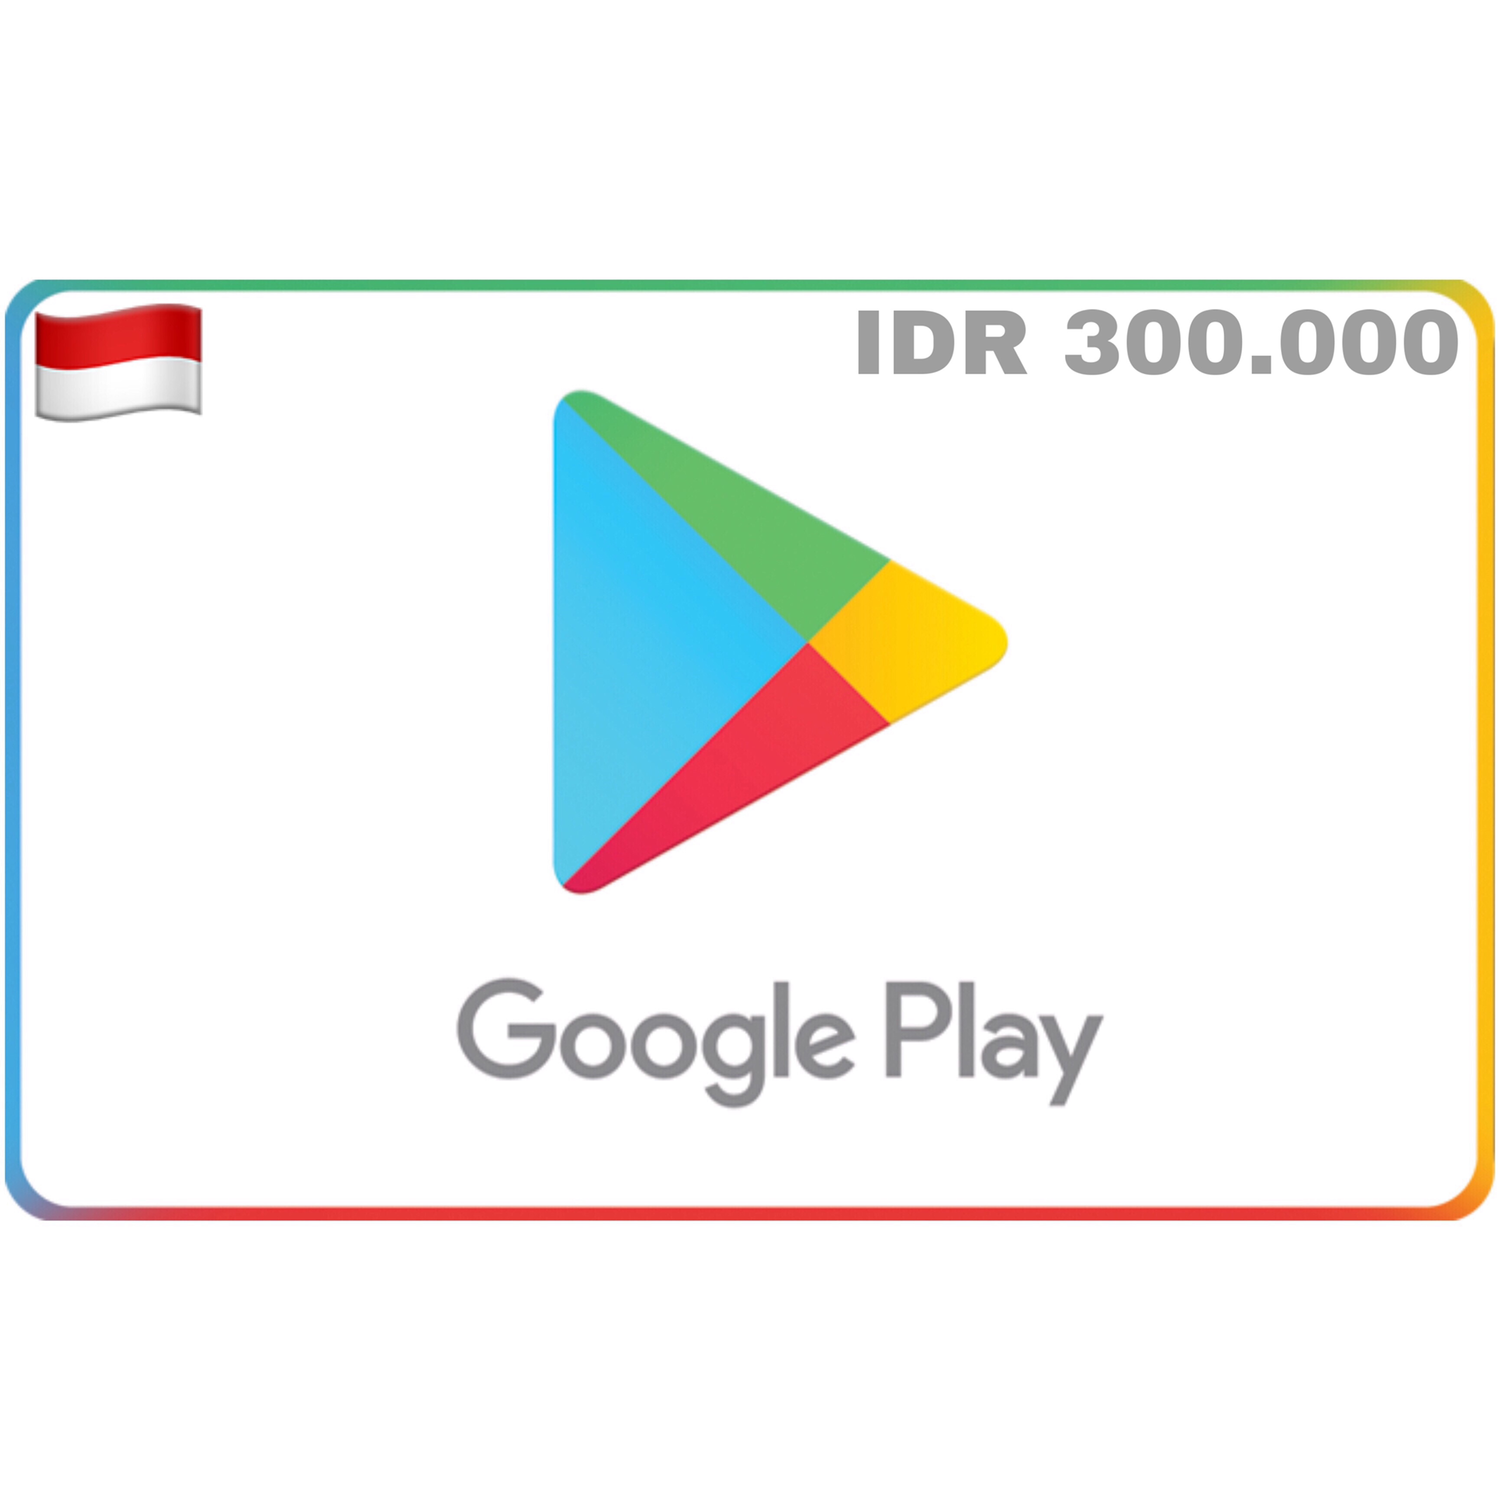 Google Play Indonesia IDR 300.000